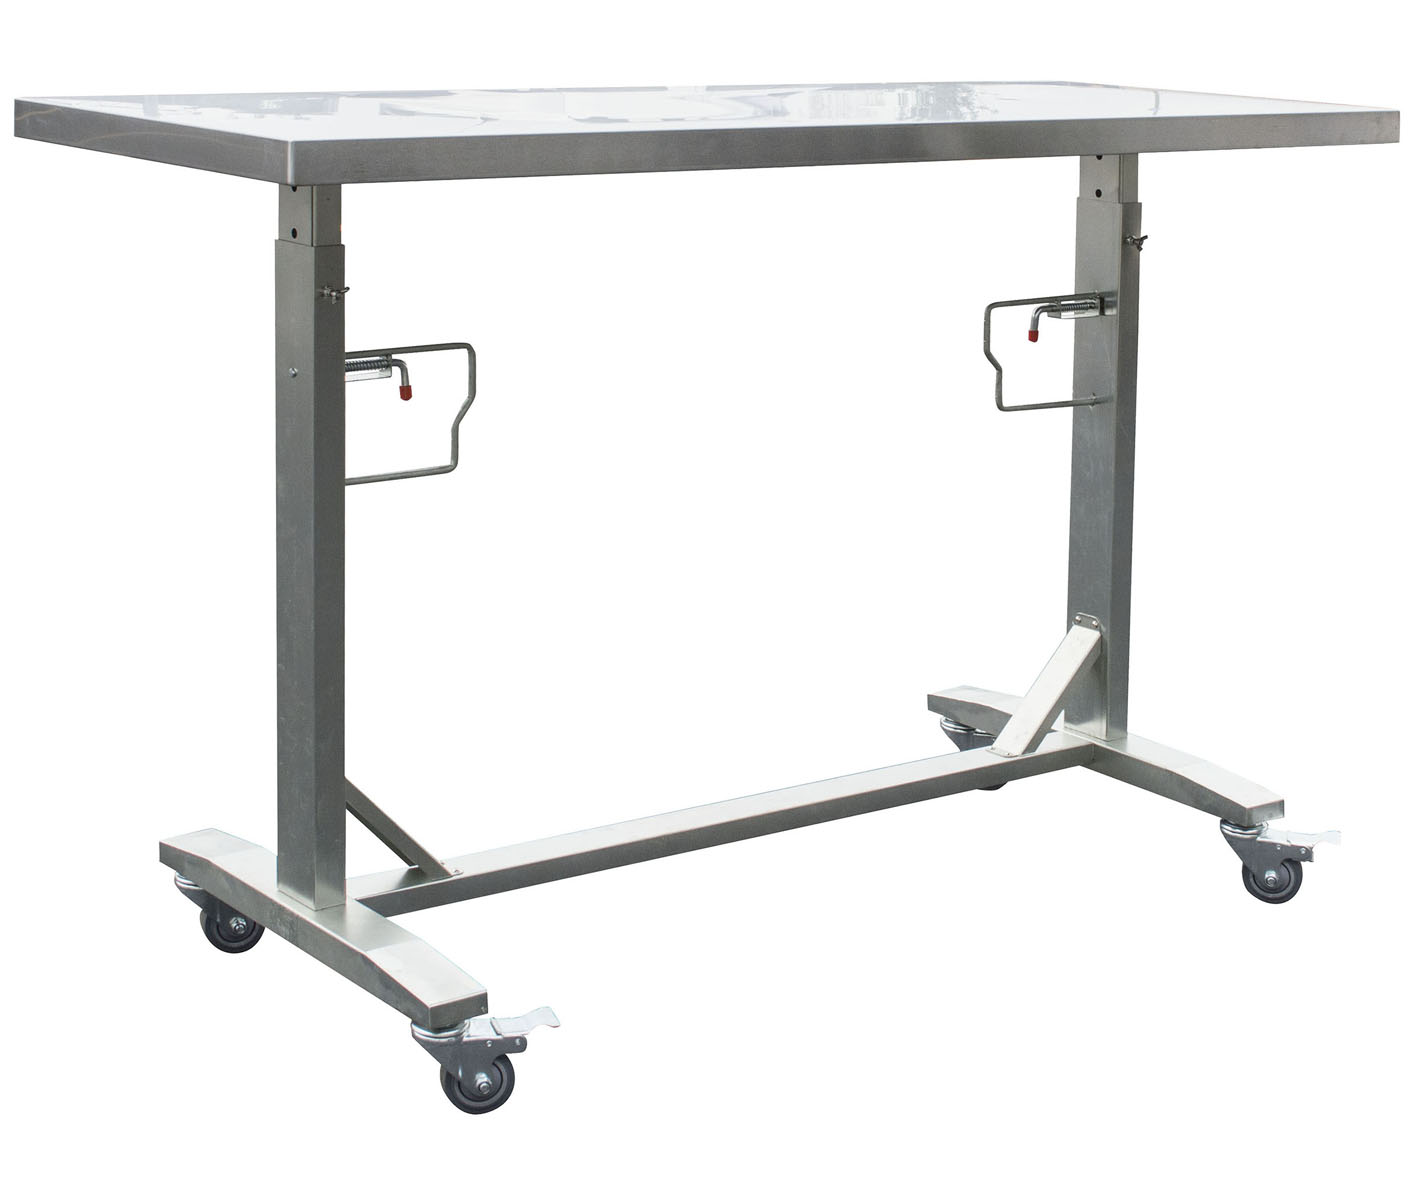 Stainless Steel Adjustable Height Work Table With Rolling Locking Casters